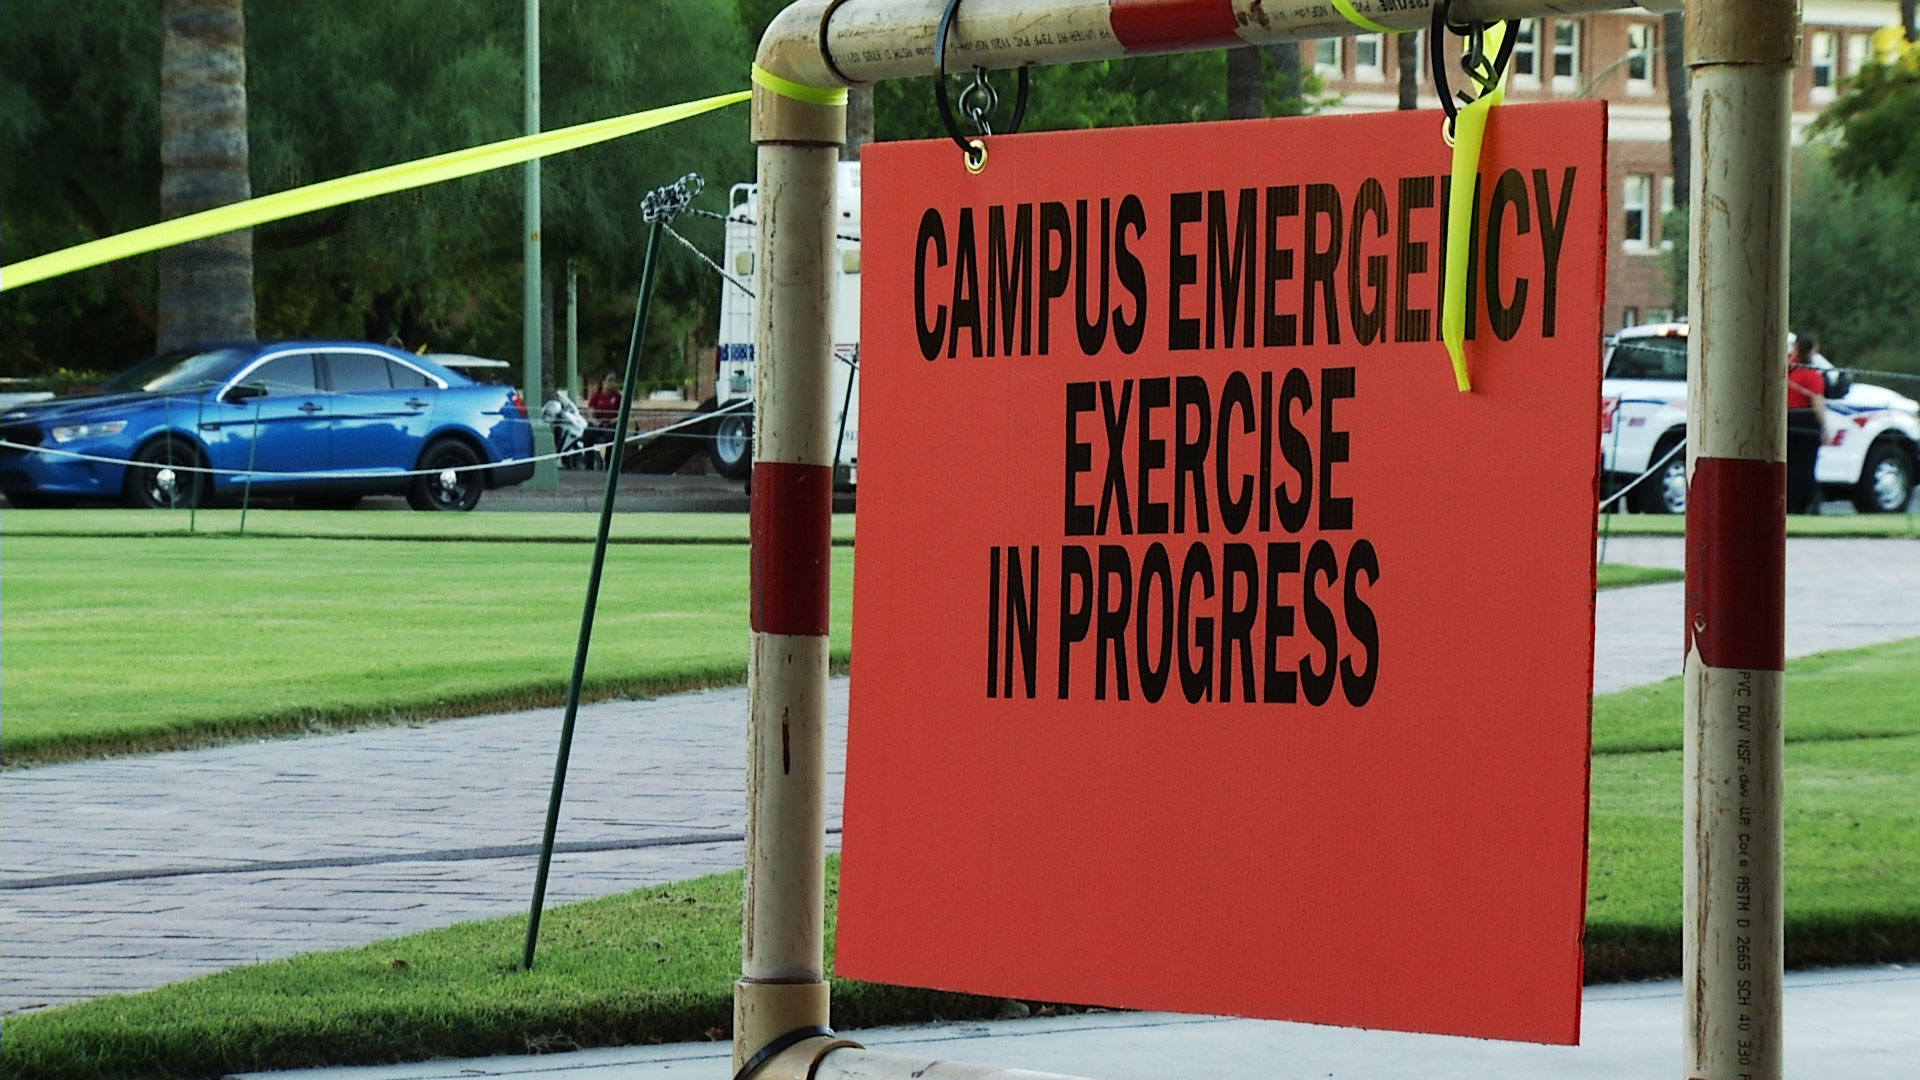 A sign notifies the public about an active shooter drill taking place at the University of Arizona on August 14, 2019.